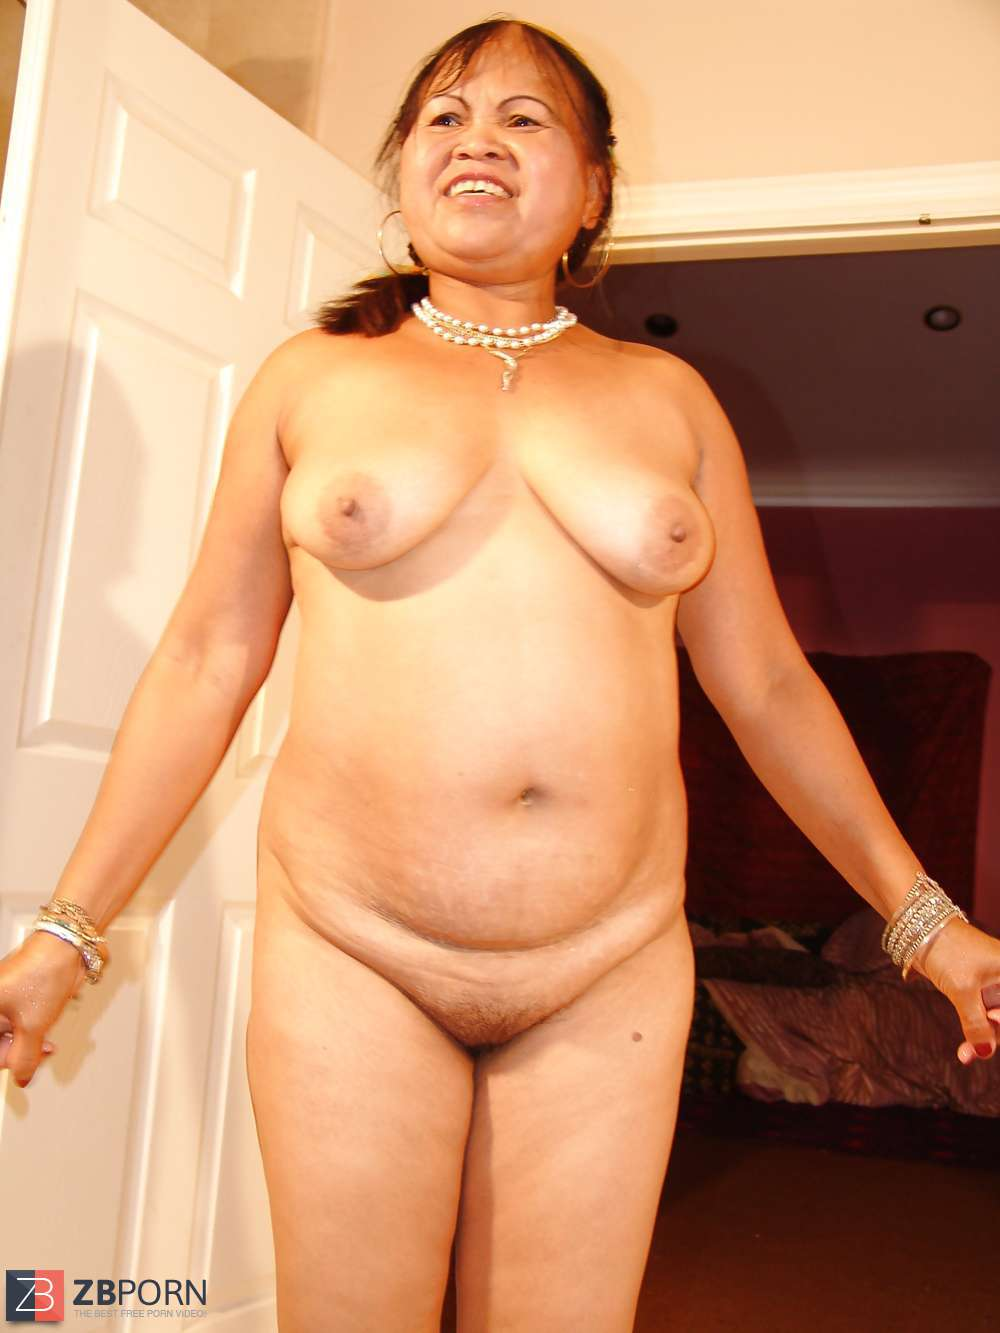 Milf and small penis